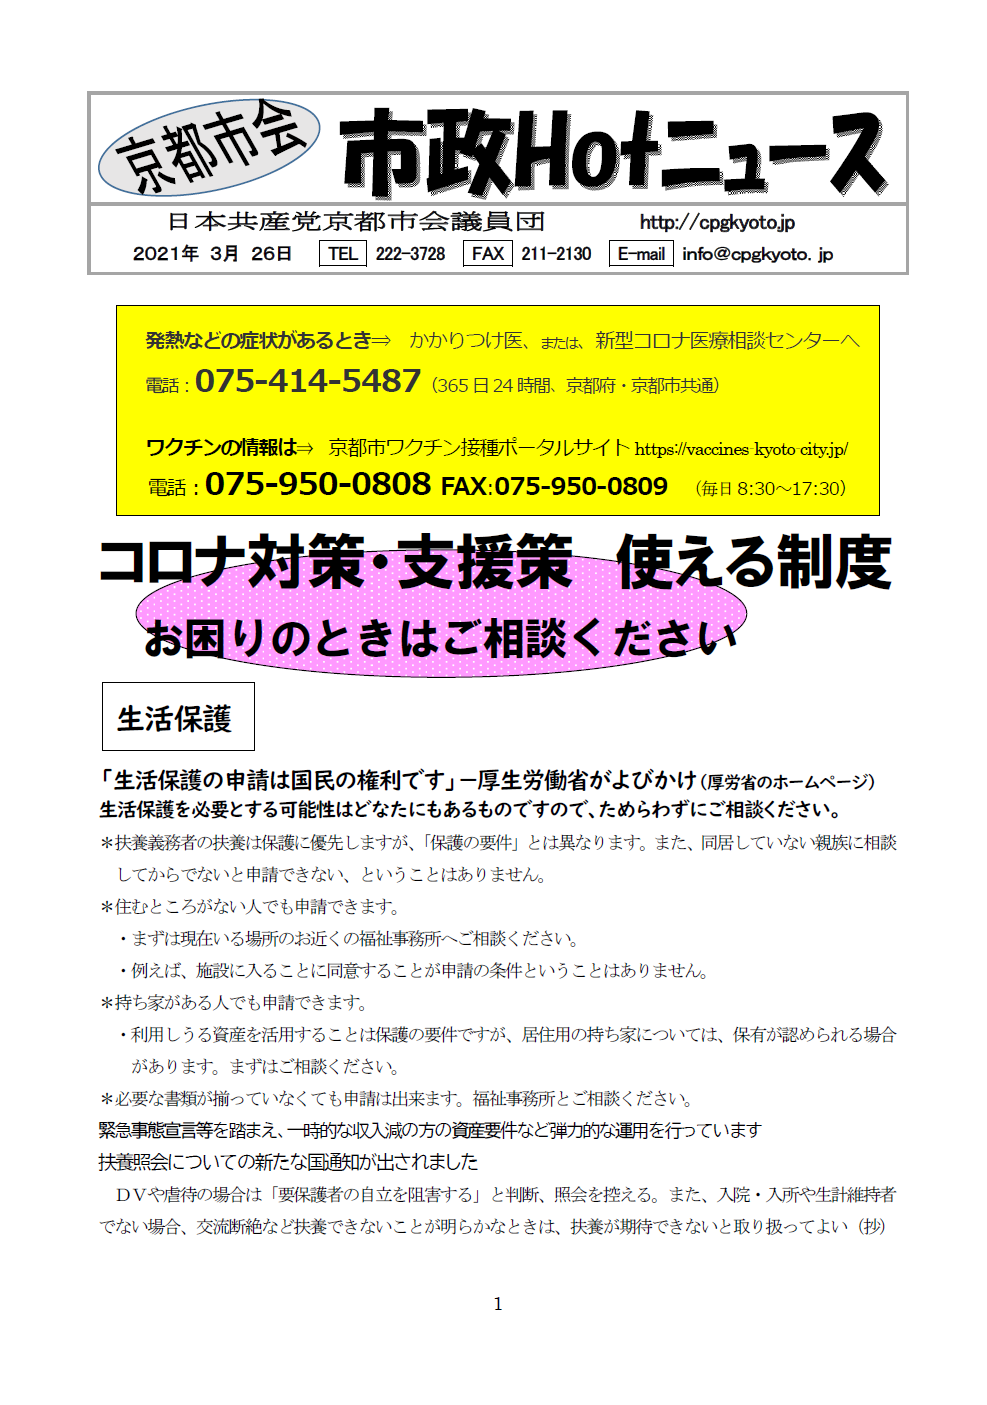 http://www.cpgkyoto.jp/topic/20210326%E4%BD%BF%E3%81%88%E3%82%8B%E5%88%B6%E5%BA%A6.png